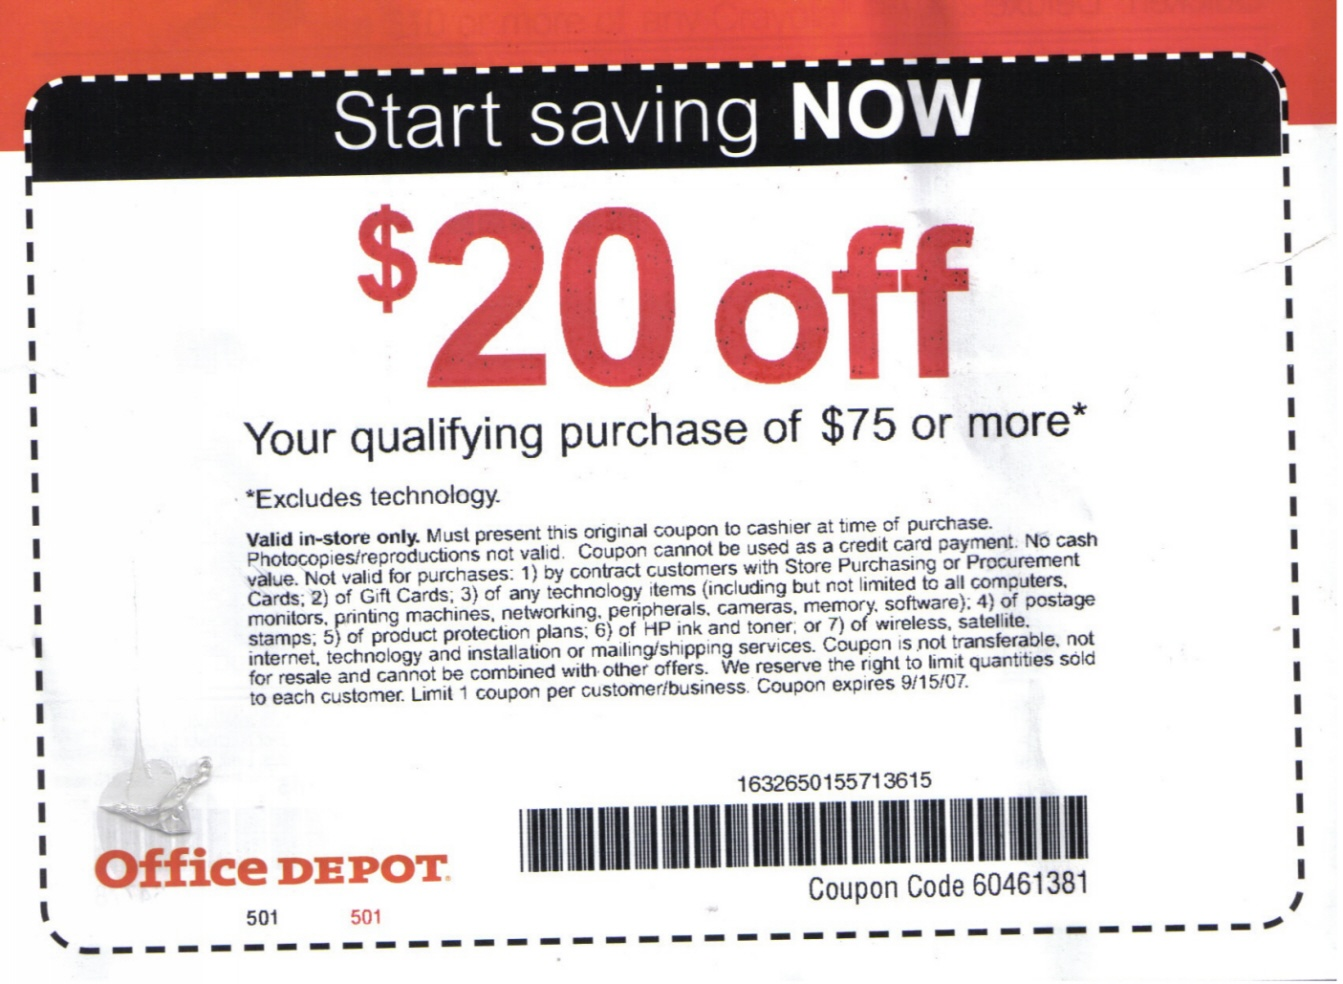 Home Depot Discount Coupons From Sears Toy R Us Office Depot Target Etc Etc